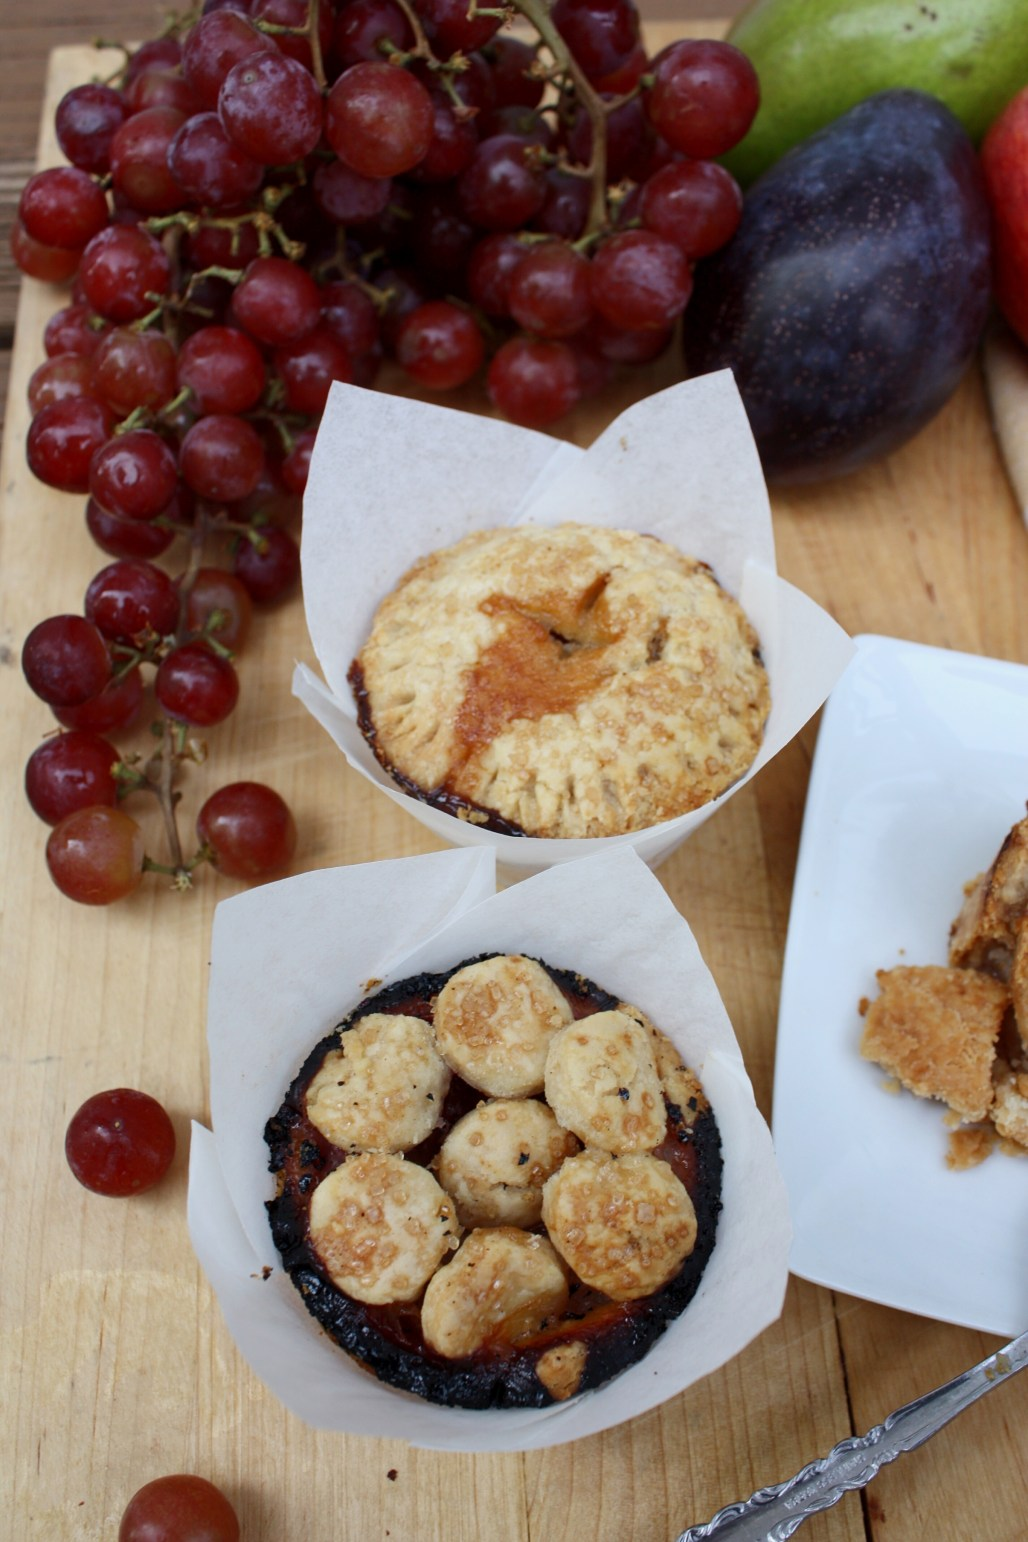 Individual Autumn Pies : Maple Brown Sugar Apple & Pear, Grape, Plum | Dreamery Events